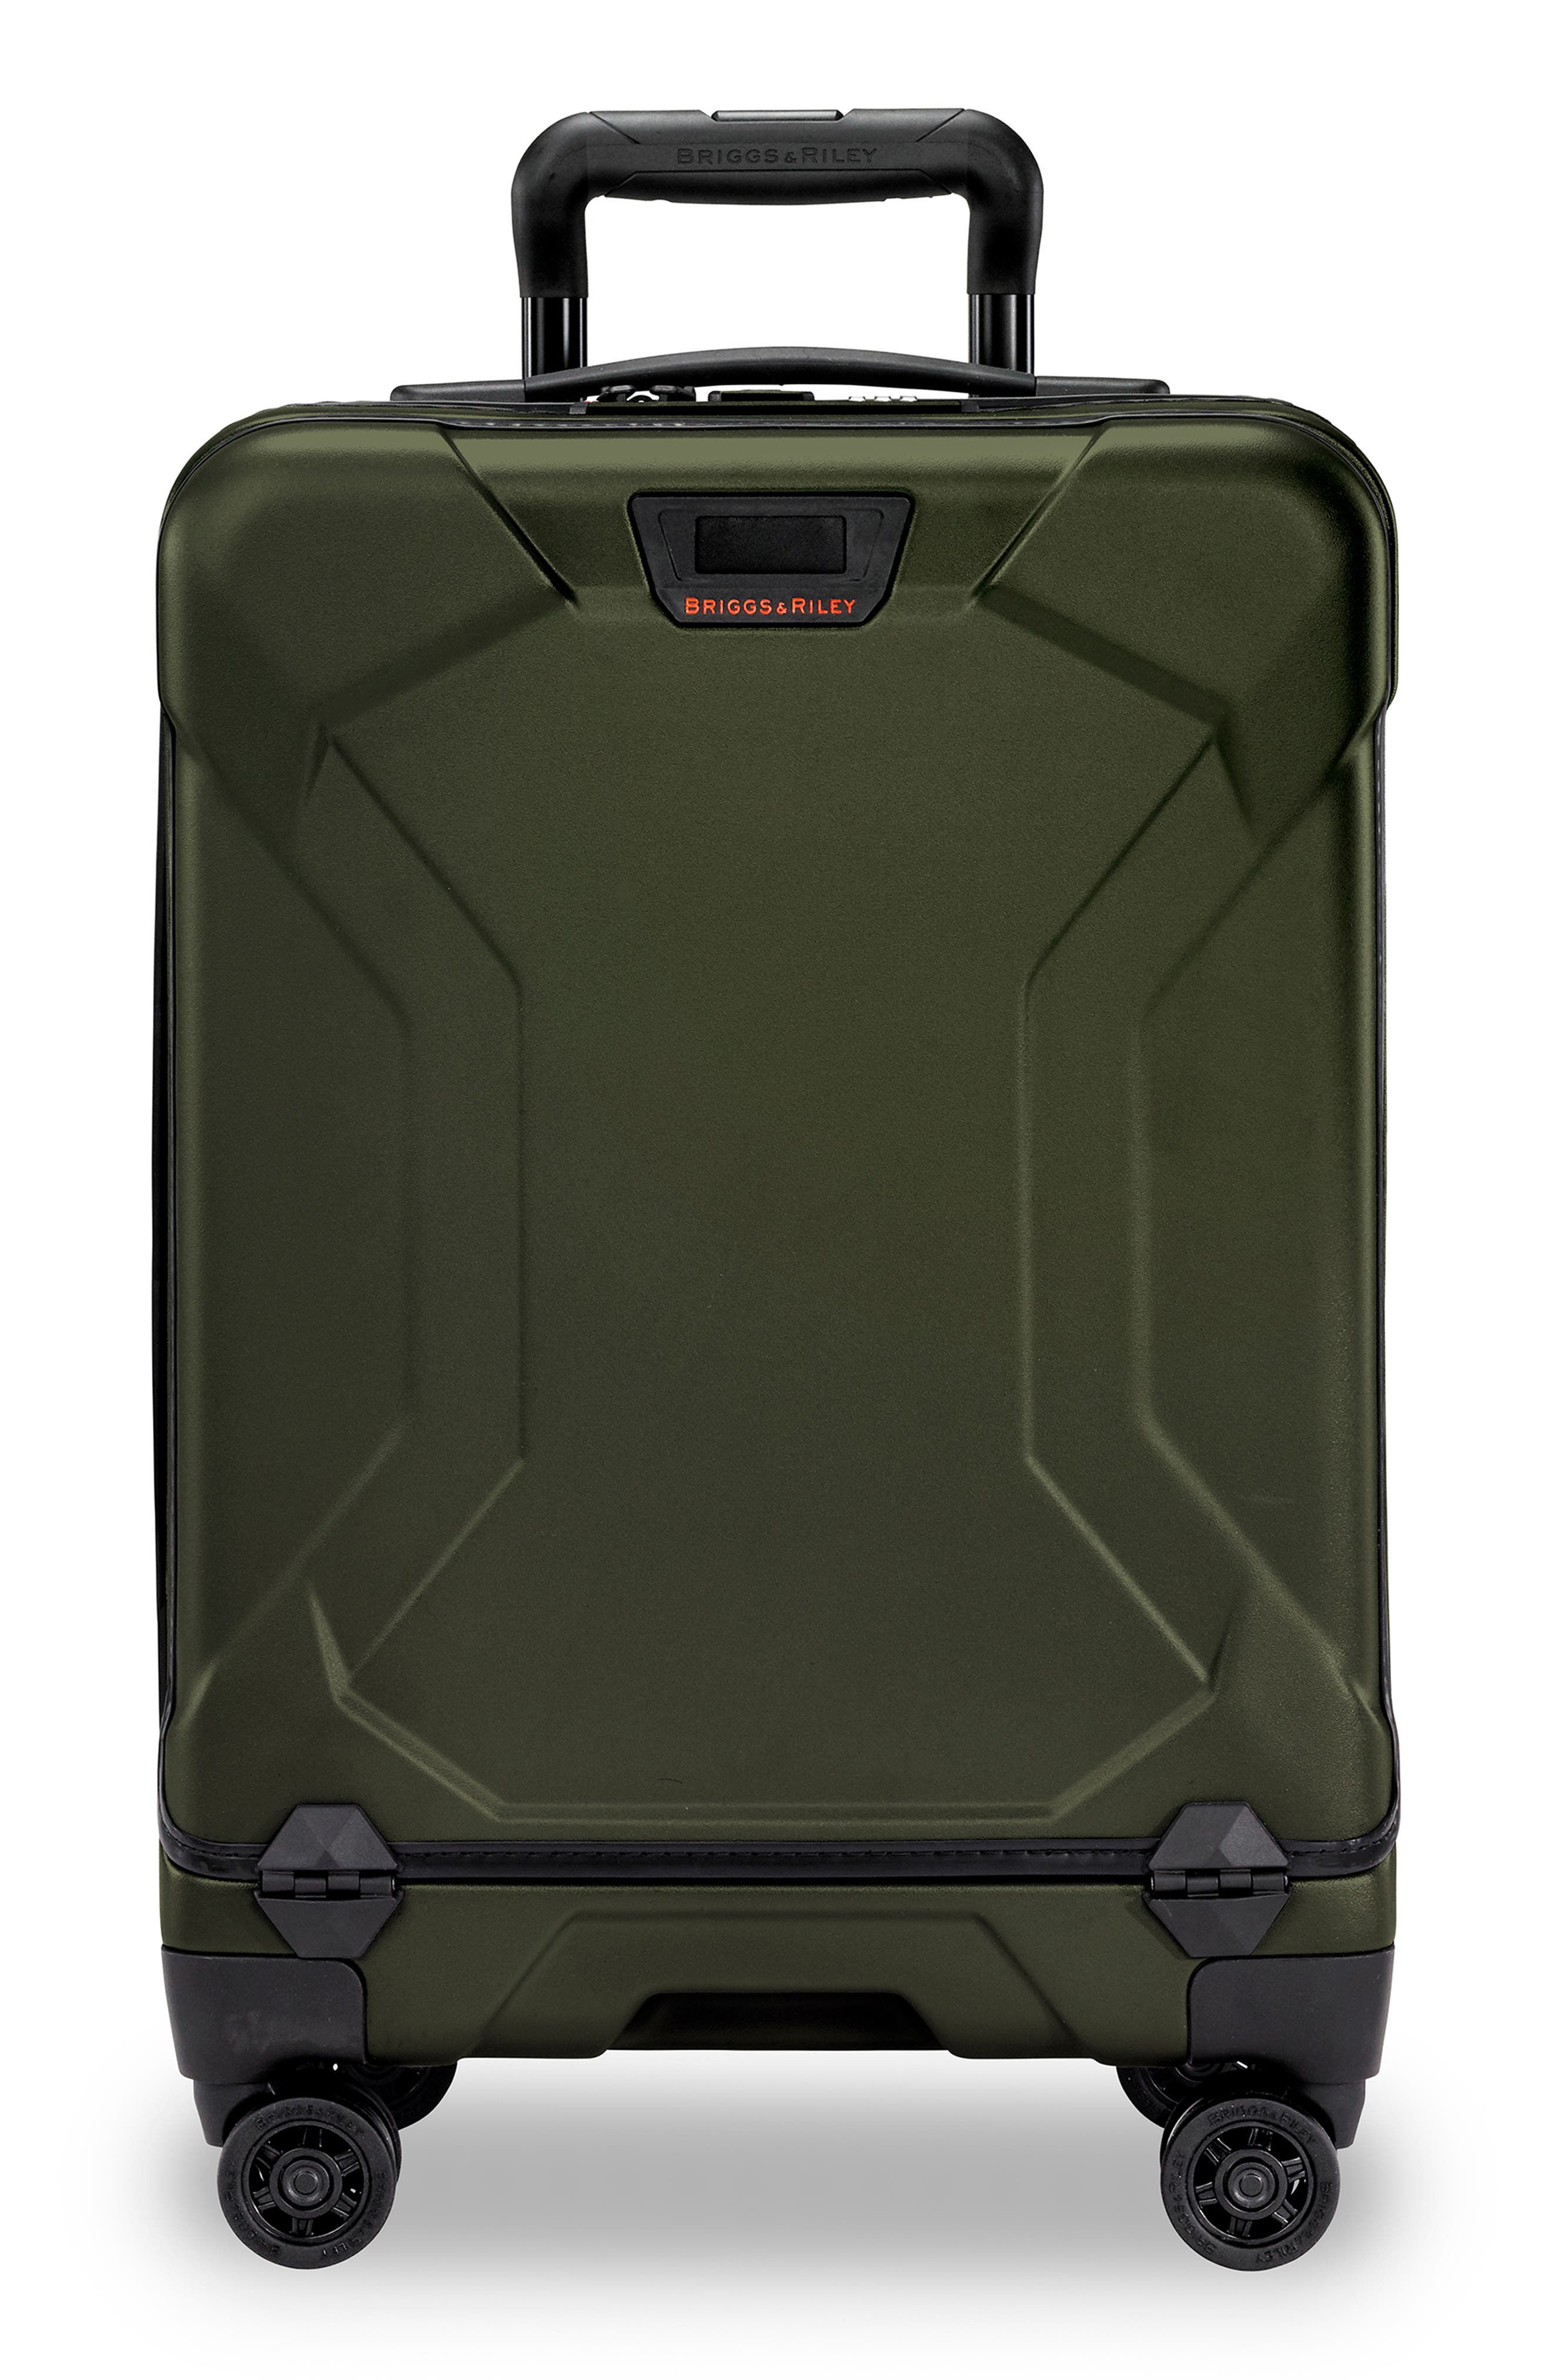 Torq 22-Inch Domestic Wheeled Carry-On